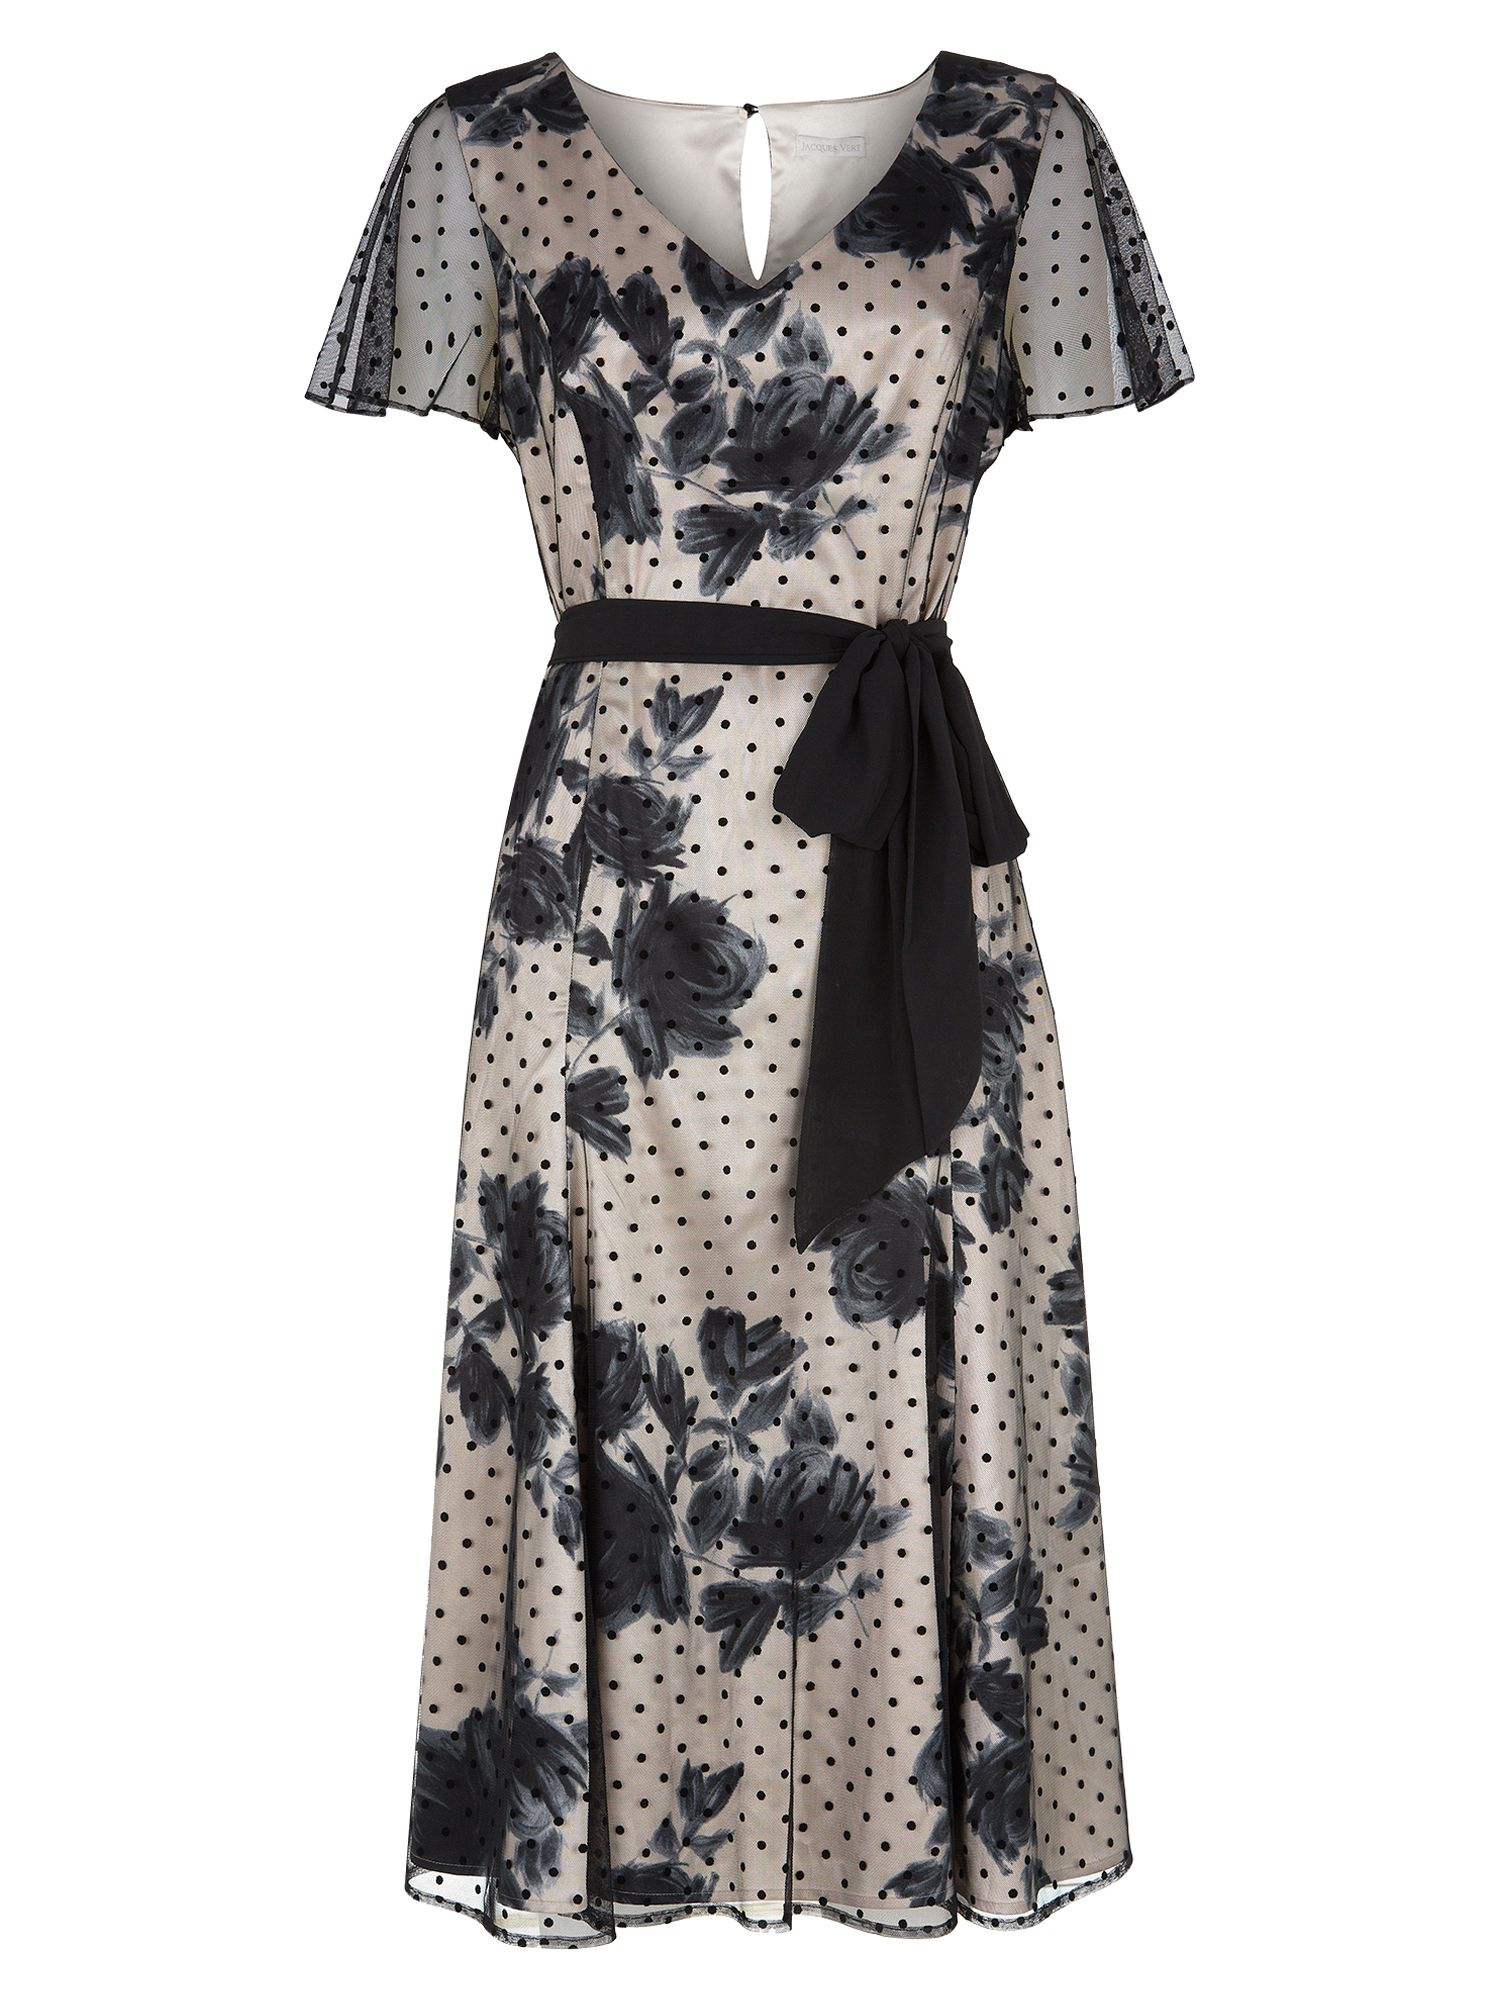 jacques vert floral shadow spot dress multi black, jacques, vert, floral, shadow, spot, dress, multi, black, jacques vert, 8|16|12, clearance, womenswear offers, womens dresses offers, special offers, women, plus size, inactive womenswear, new reductions, womens dresses, 1721418